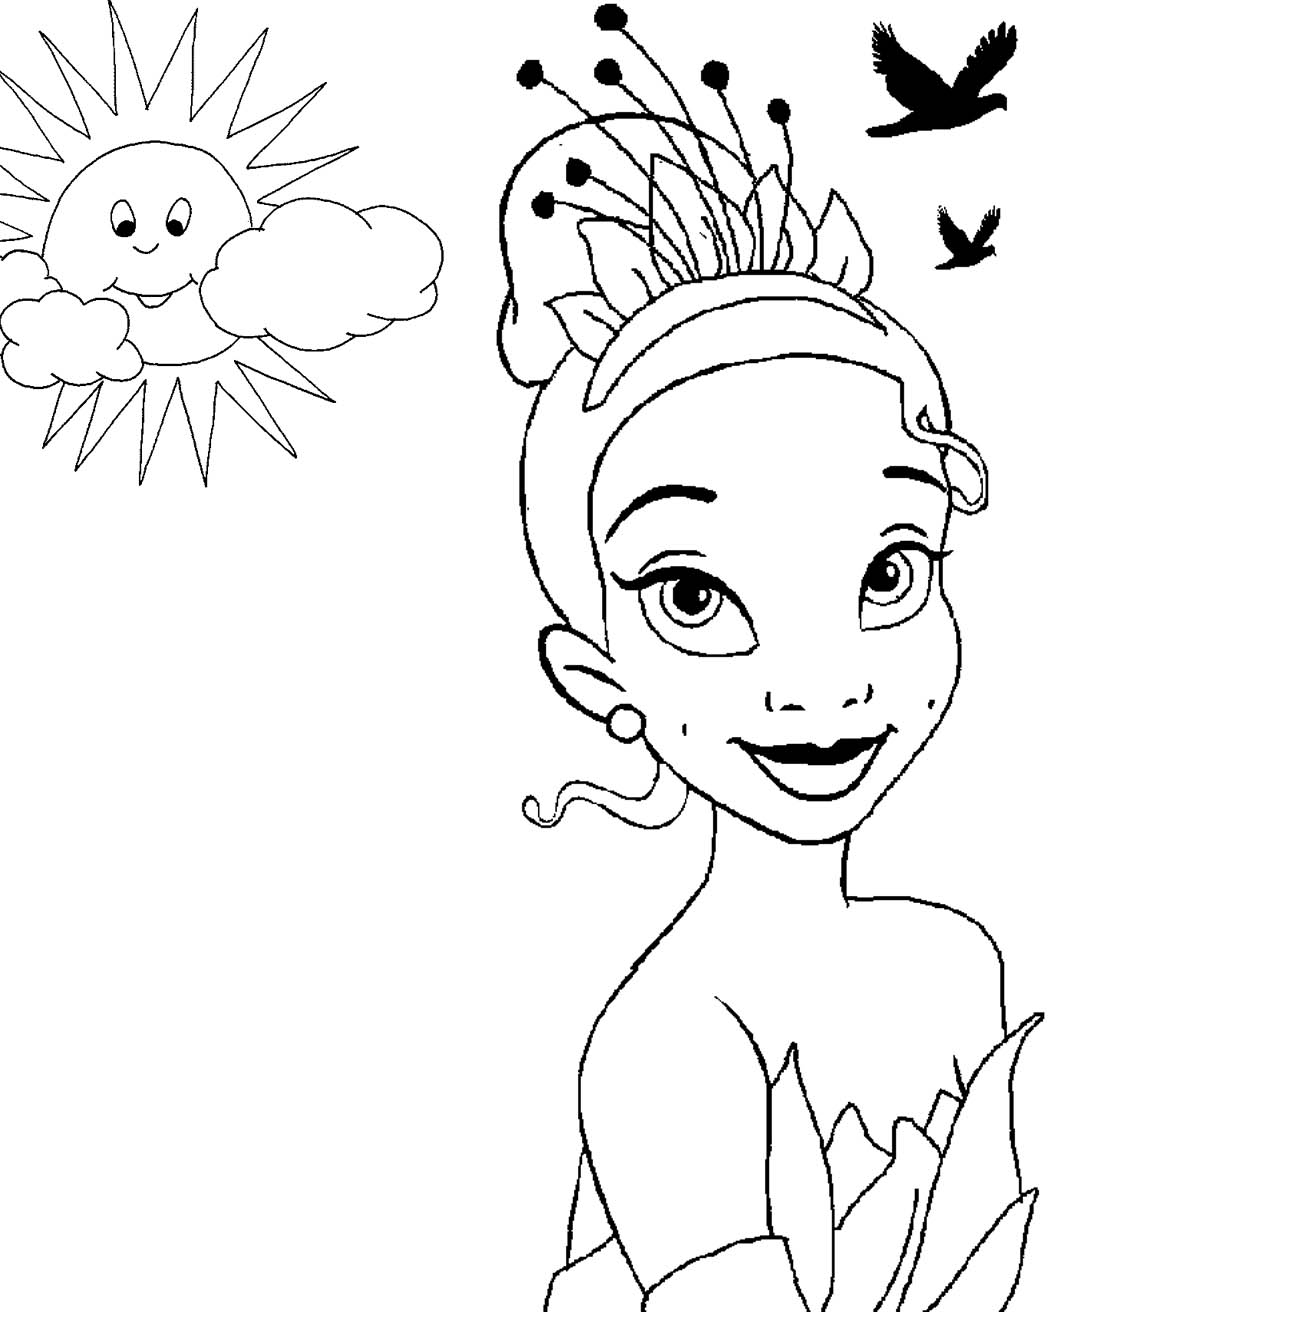 disney printable easy coloring pages disney39s moana coloring pages disneyclipscom printable coloring easy disney pages